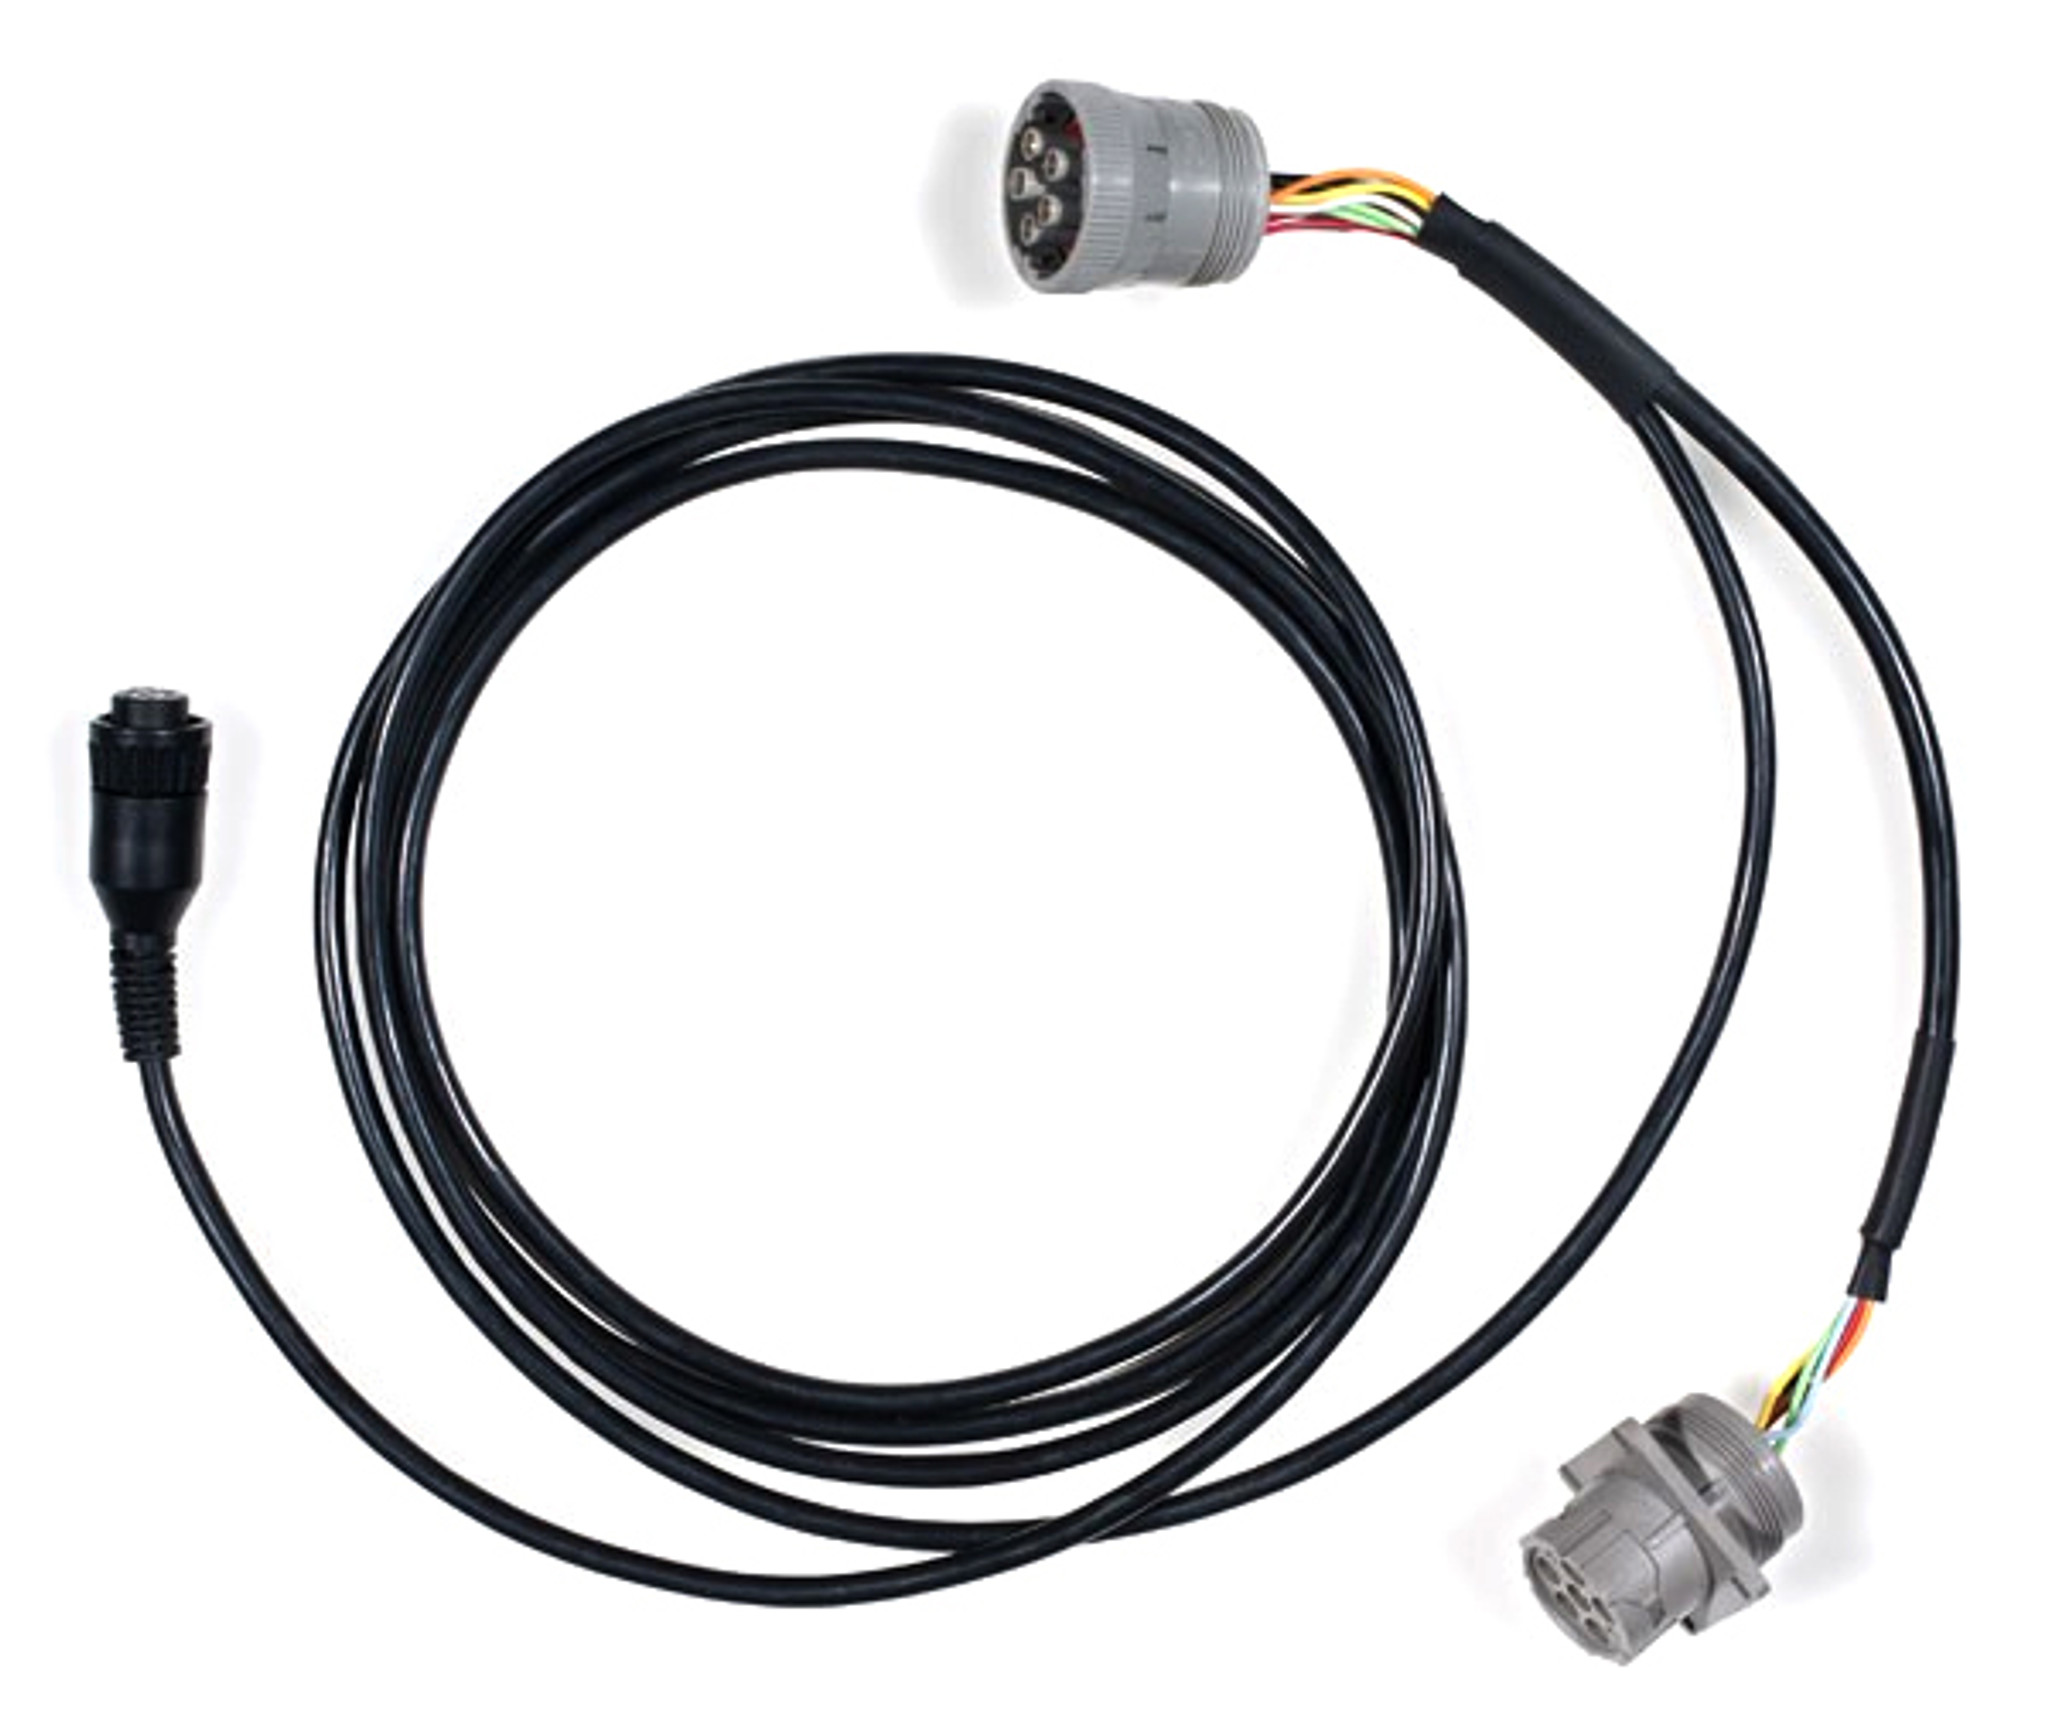 mack truck wiring tnd 760 - wiring database rotation miss-executrix -  miss-executrix.ciaodiscotecaitaliana.it  miss-executrix.ciaodiscotecaitaliana.it